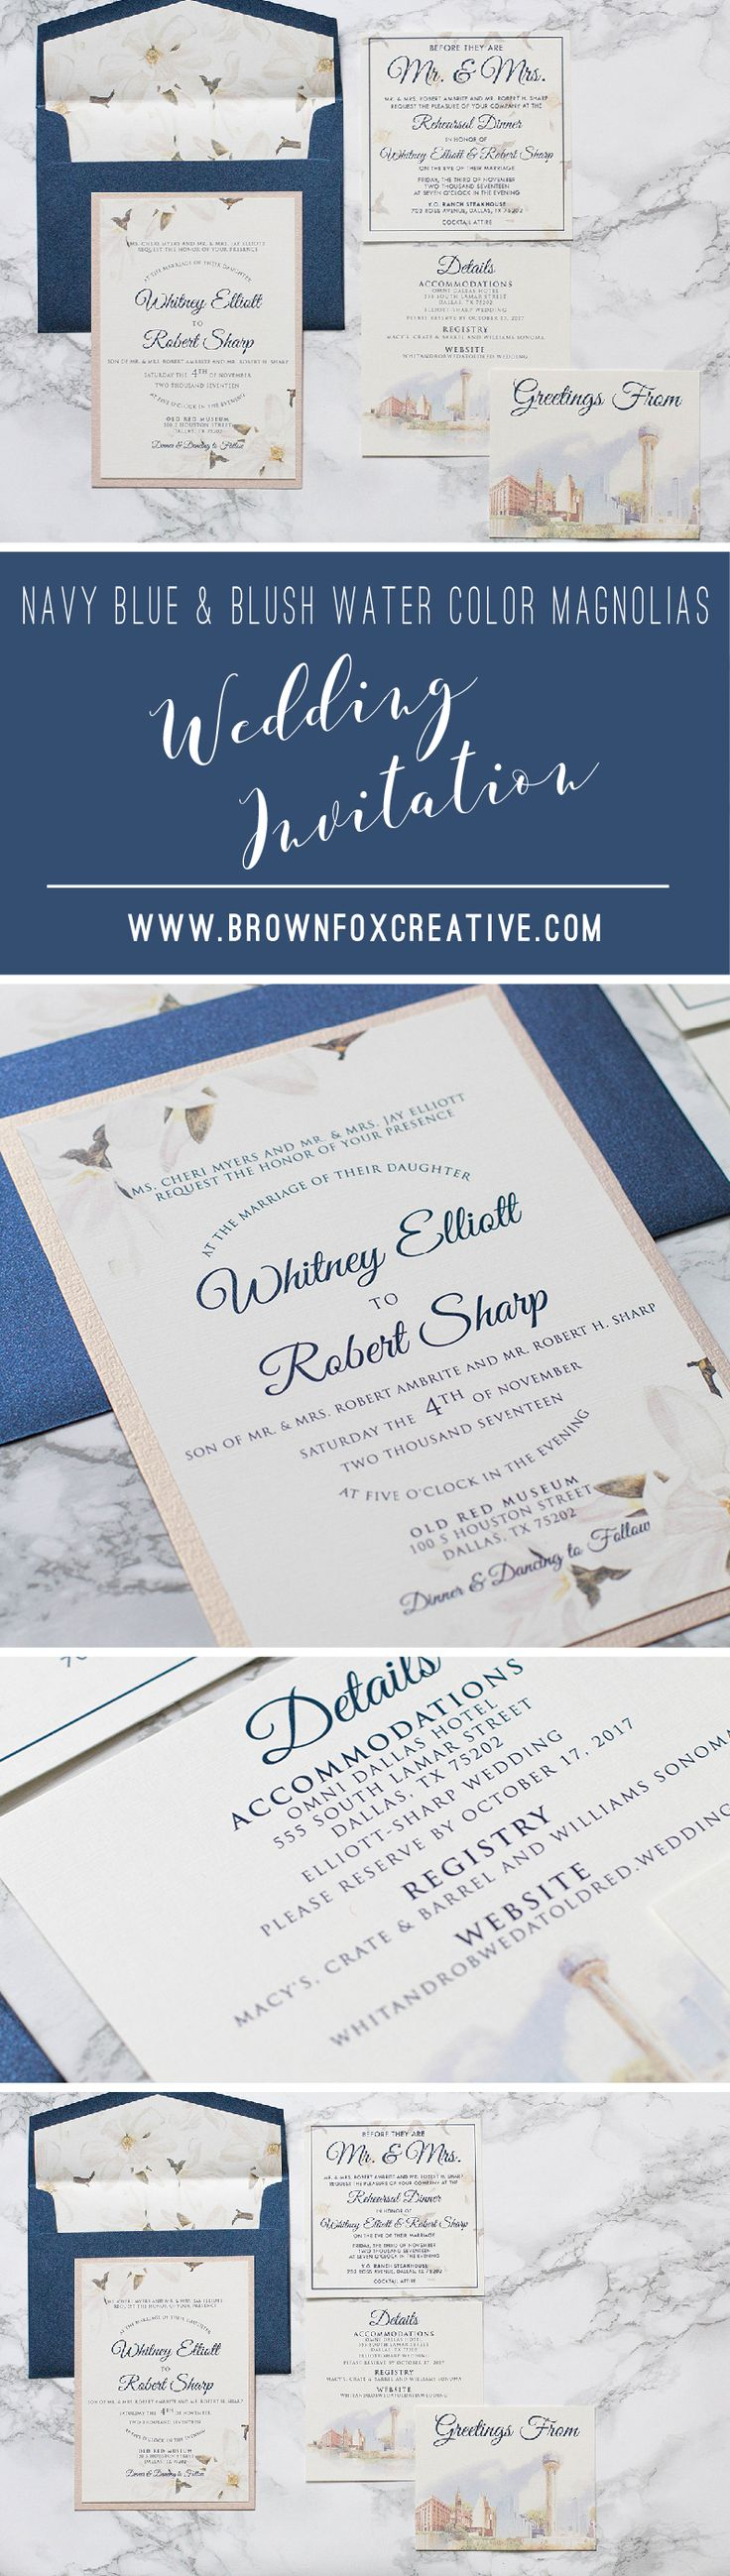 luxury wedding invitations dallas%0A Two Layer Navy Blue and Blush Rose Pink  City of Dallas and Magnolias  Themed Wedding